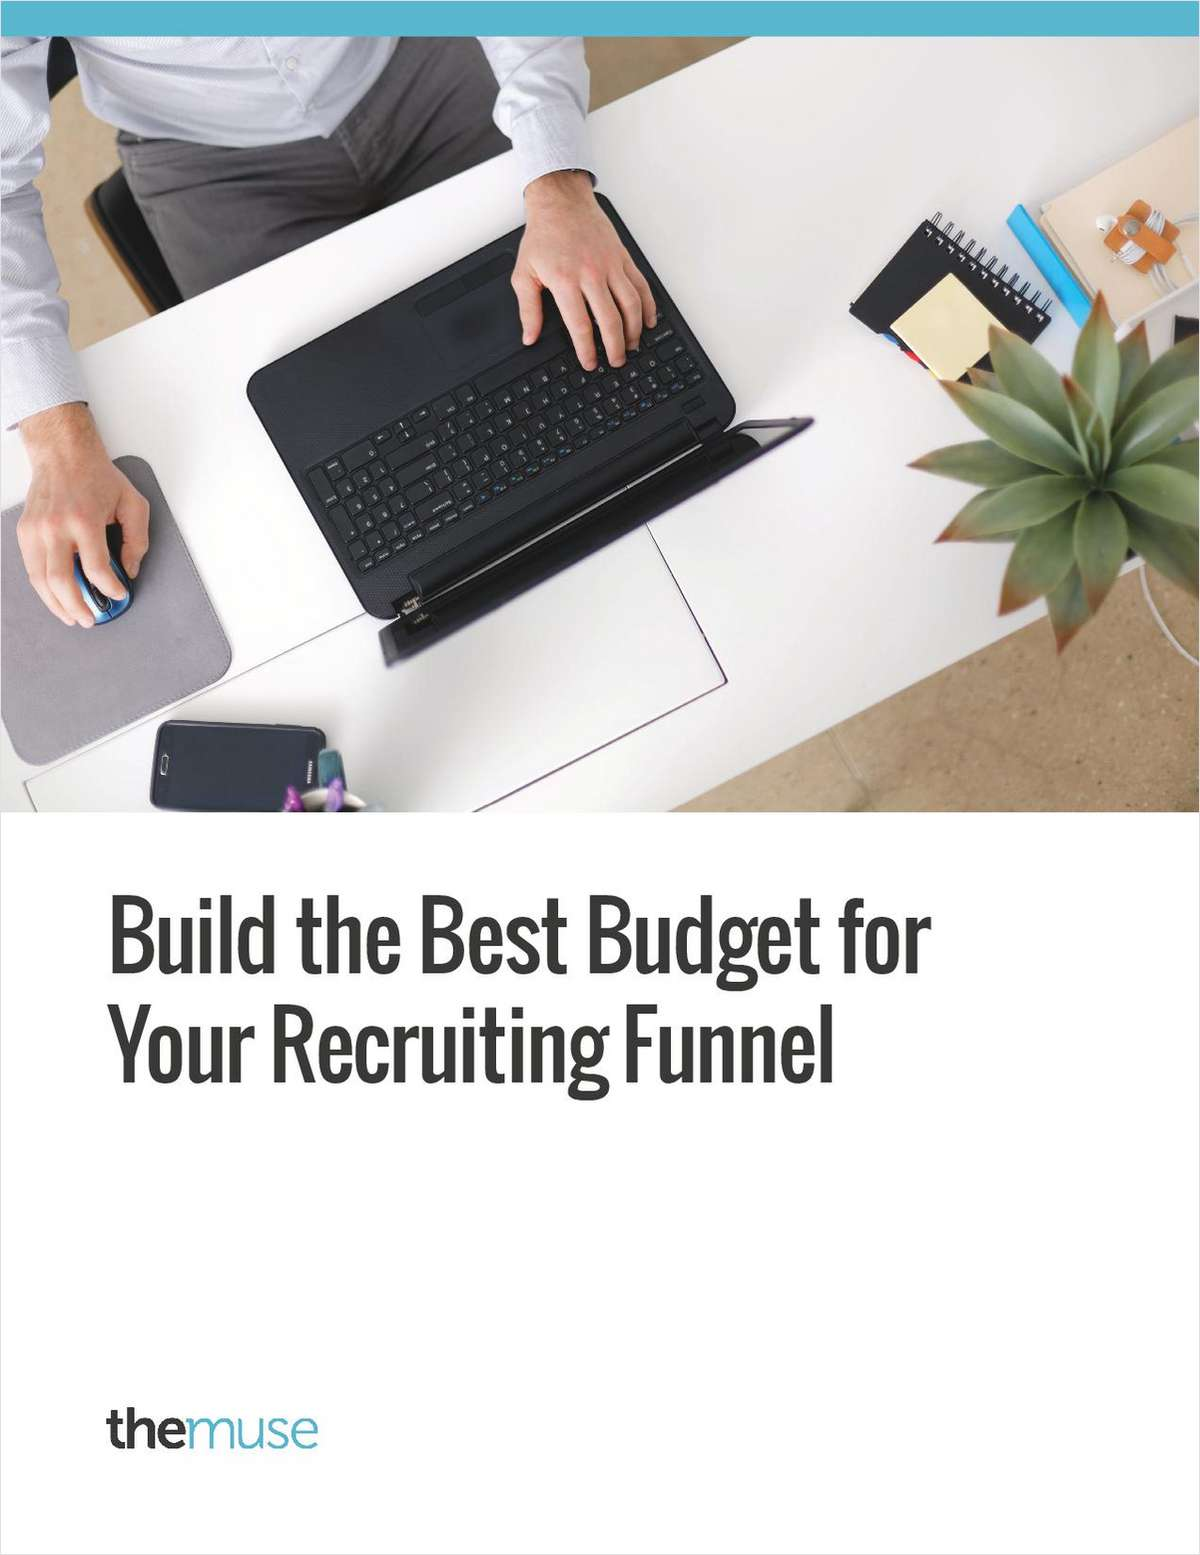 Build the Best Budget for Your Recruiting Funnel